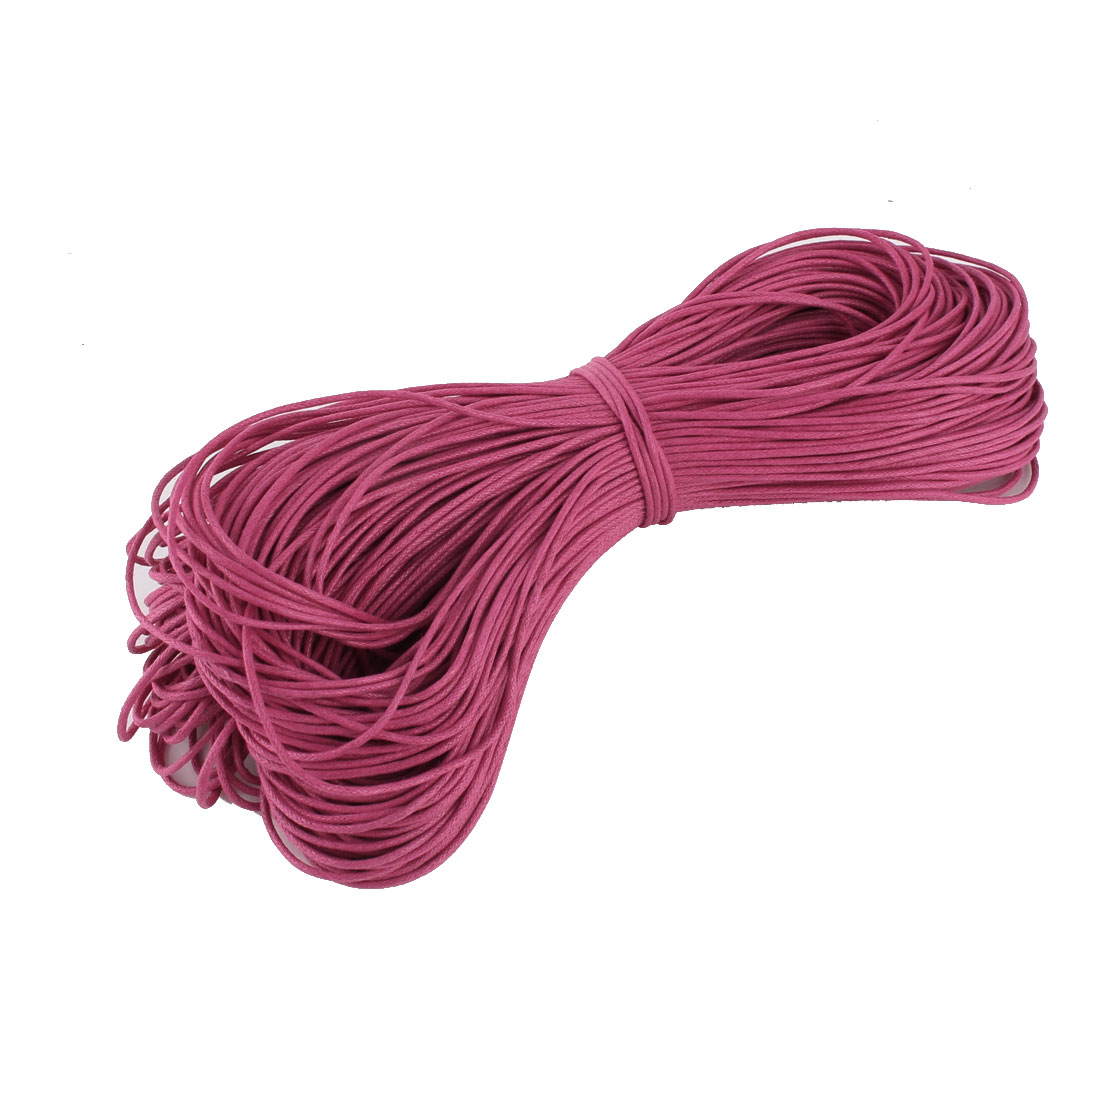 Bracelet Necklace Round Faux Leather String Beading Thread Cord Fuchsia 80m Length